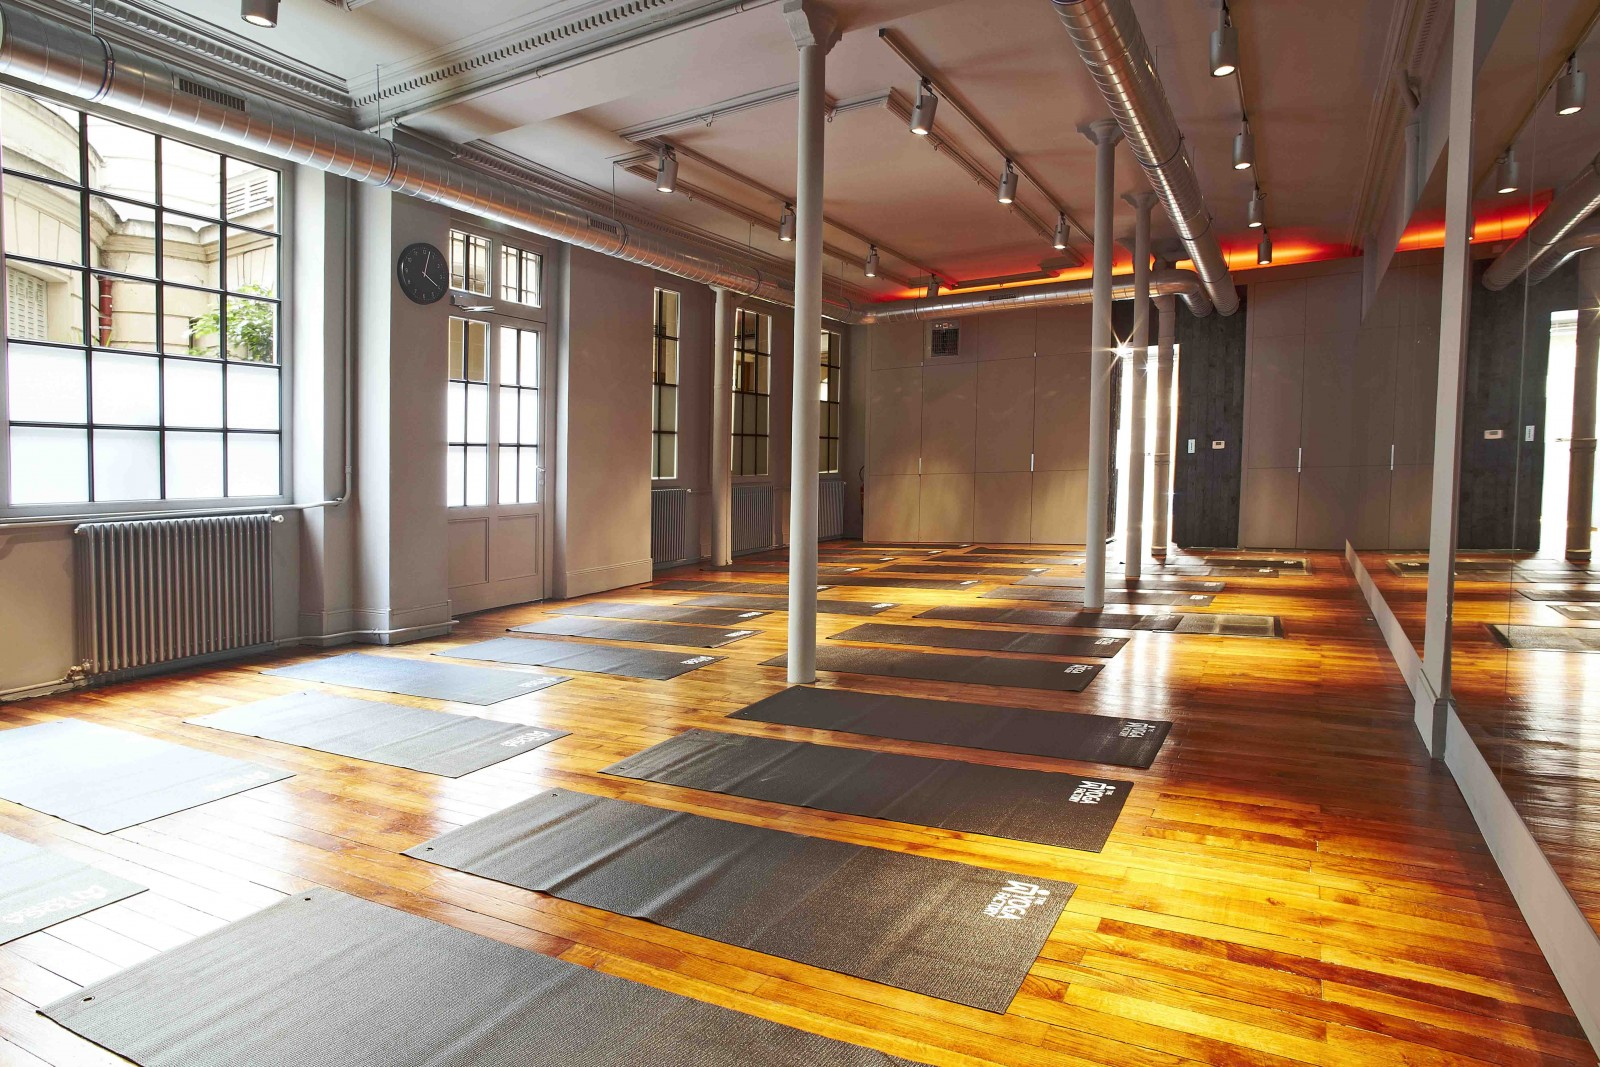 Paris' best yoga studios - hipparis.com, march 2016